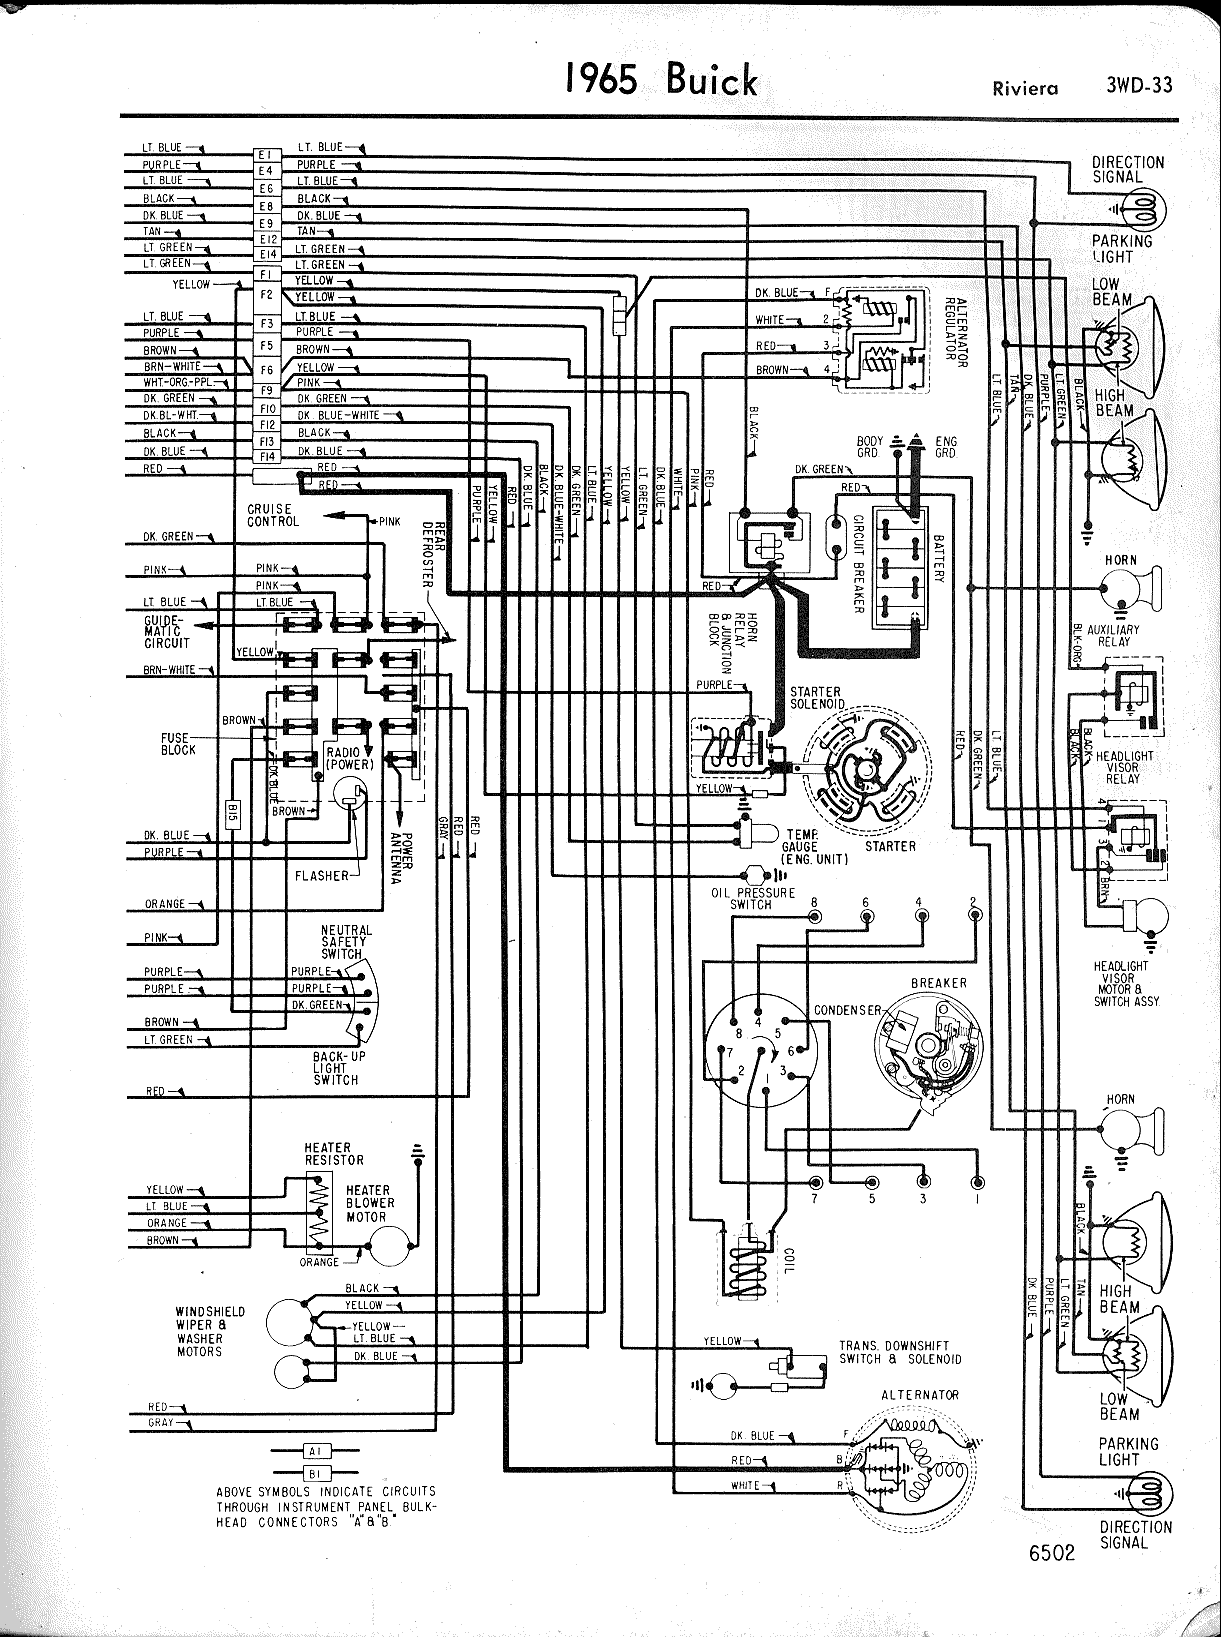 1946 Buick Wiring Diagram Schematic Library Headlight Wire For Century Diagrams 1957 1965 Rh Oldcarmanualproject Com 1996 Regal Ignition Switch